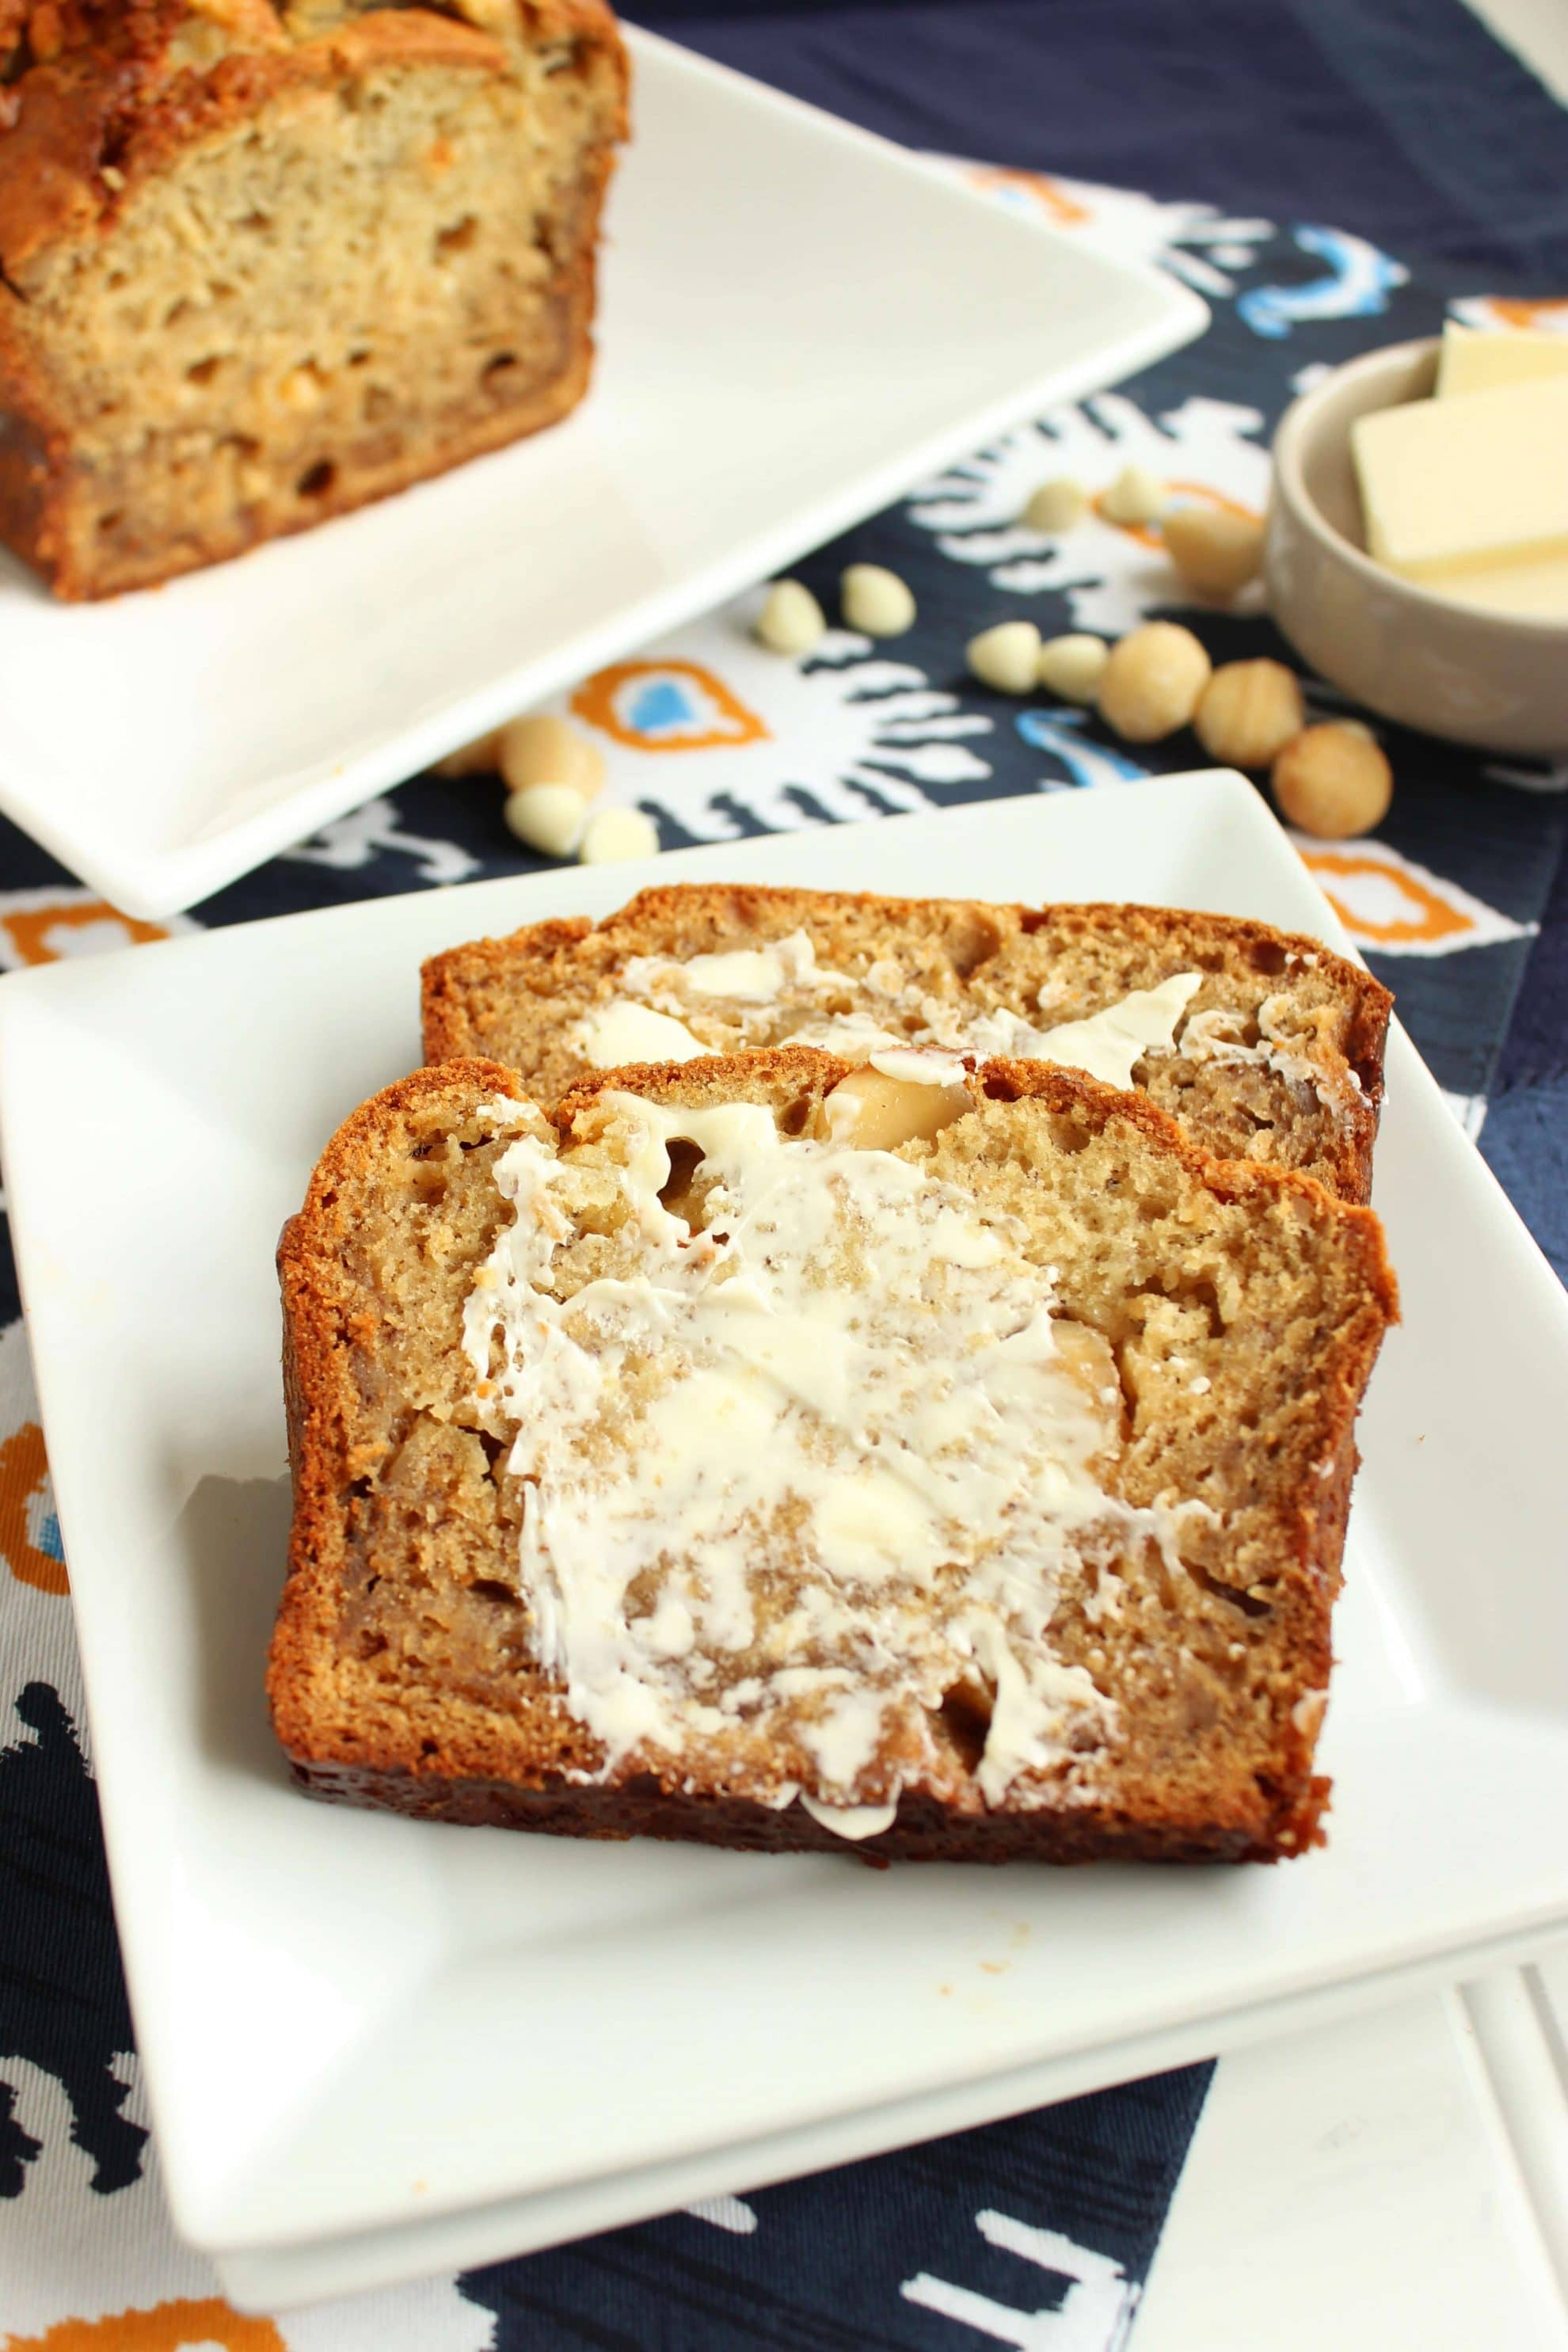 White chocolate macadamia banana bread the suburban soapbox white chocolate macadamia banana bread the suburban soapbox forumfinder Images